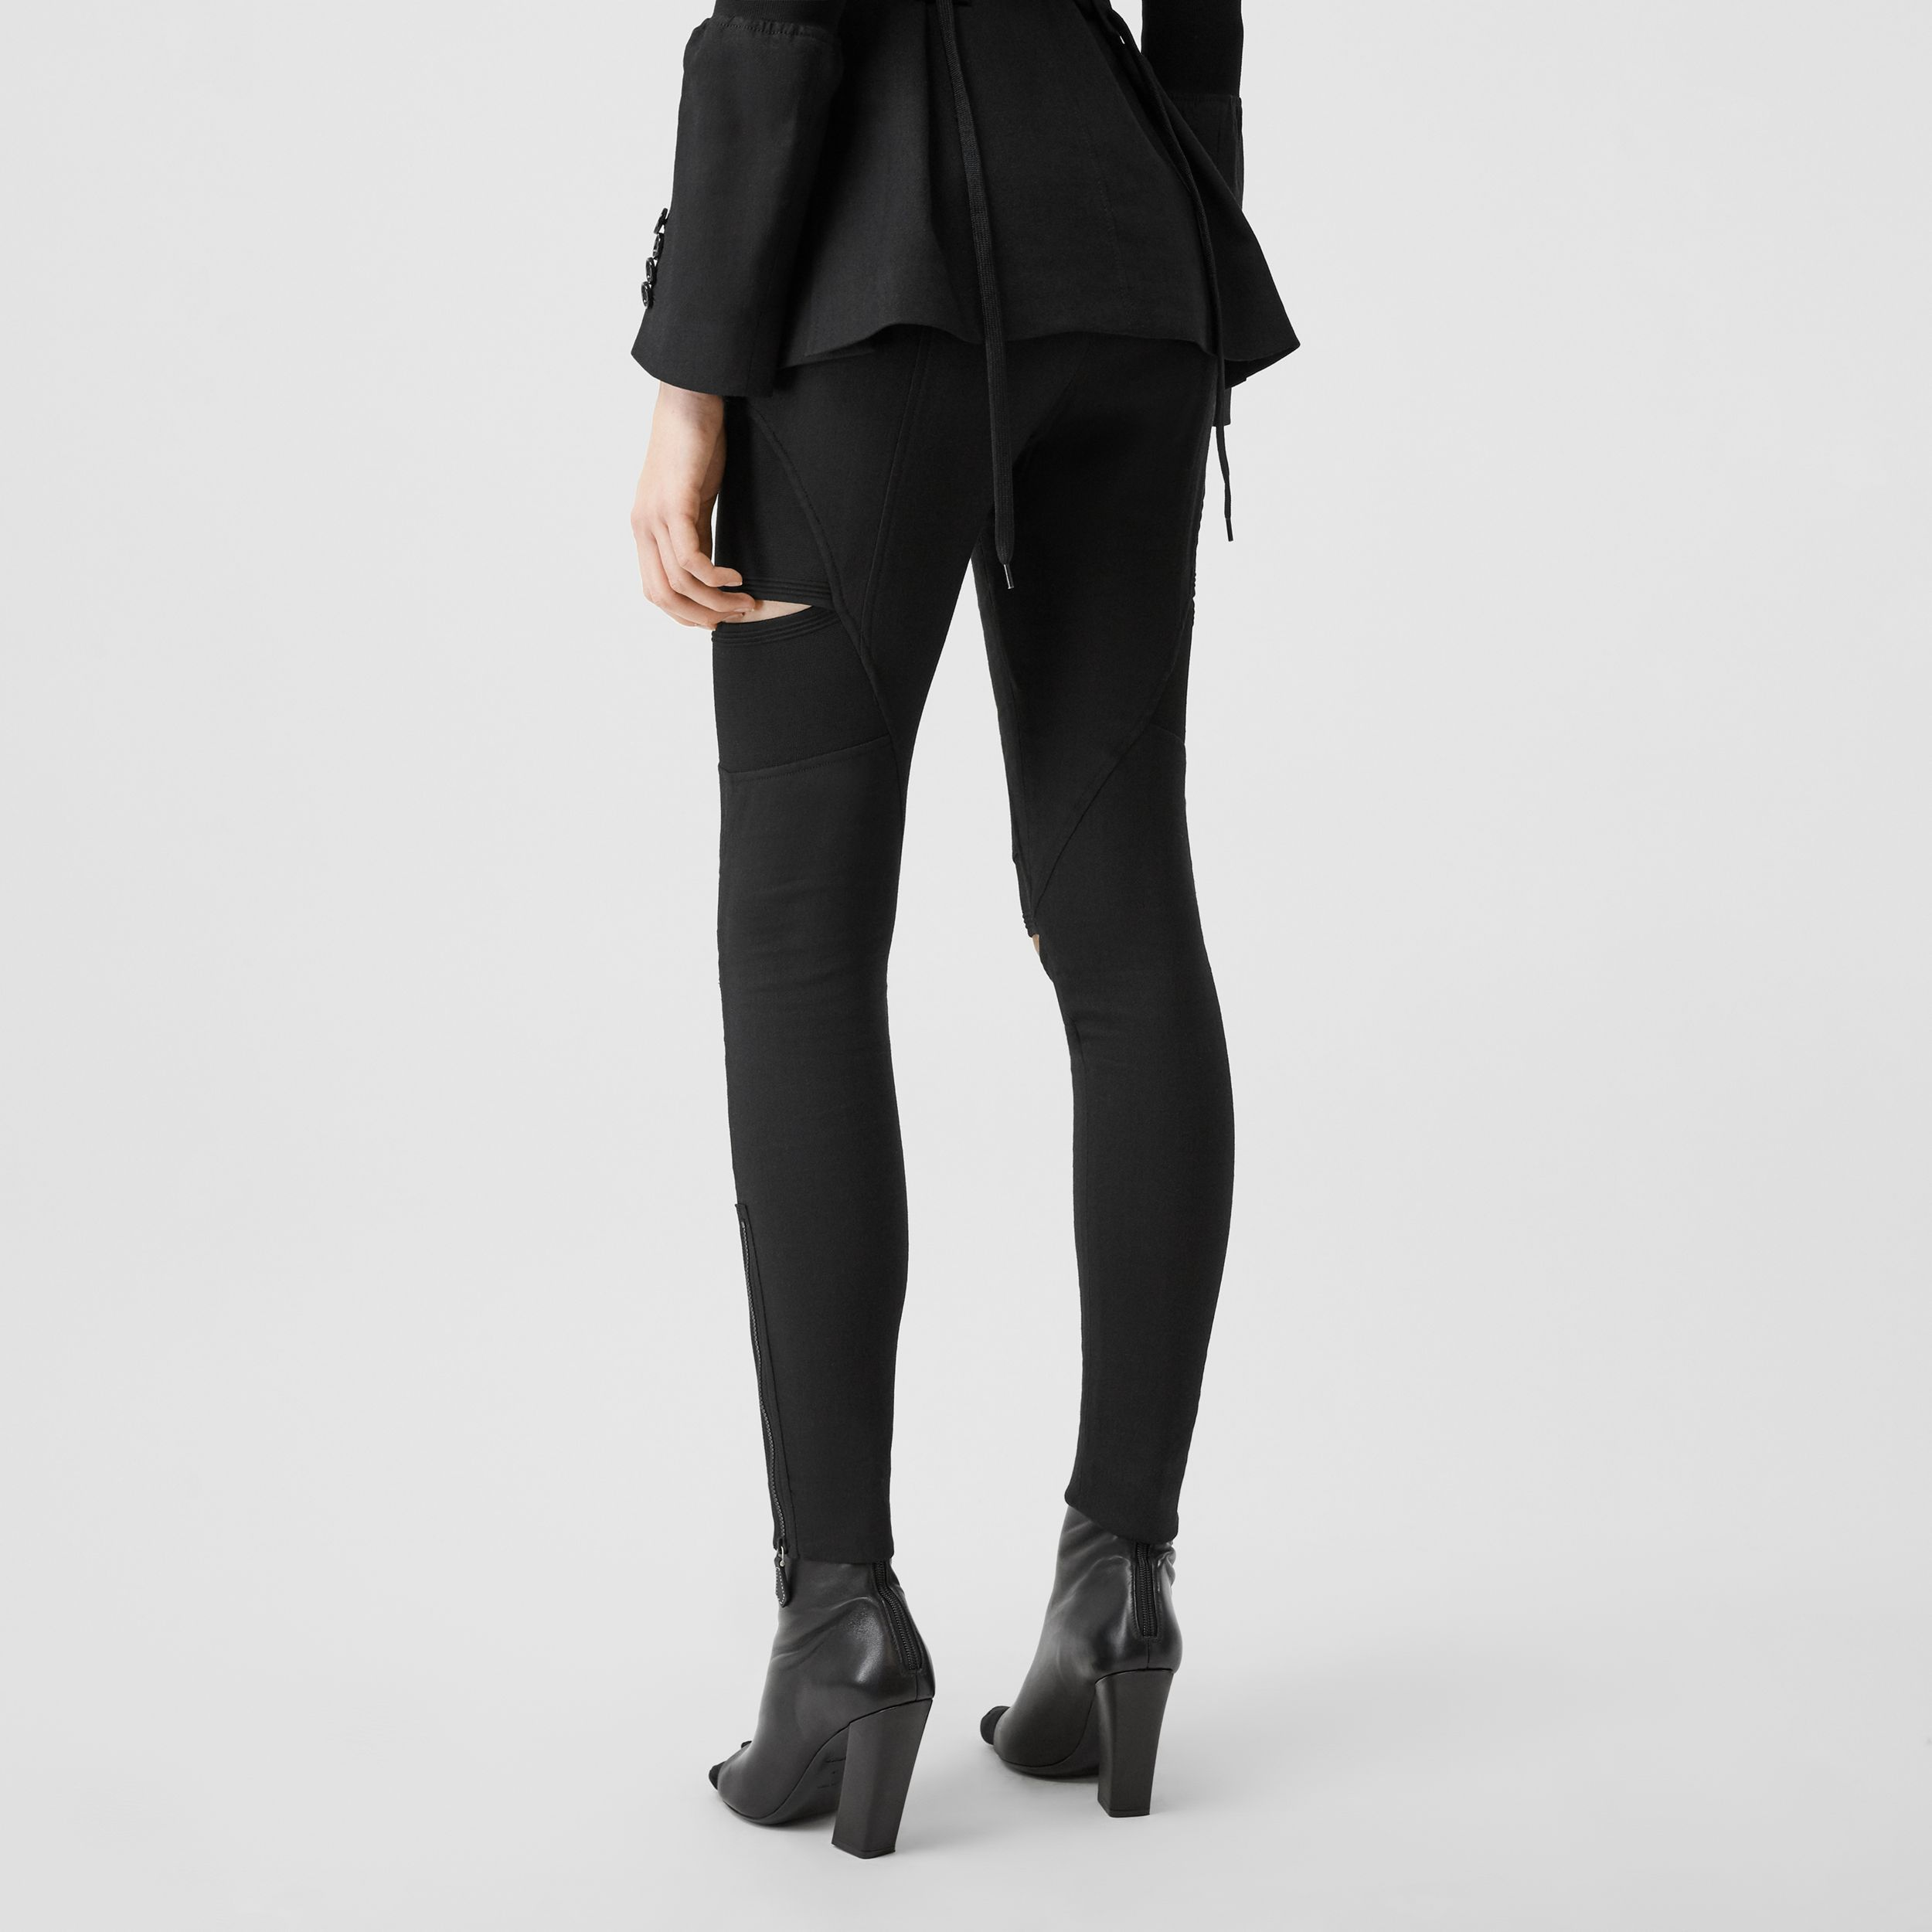 Cut-out Panel Technical Twill Skinny Fit Trousers in Black - Women | Burberry - 3